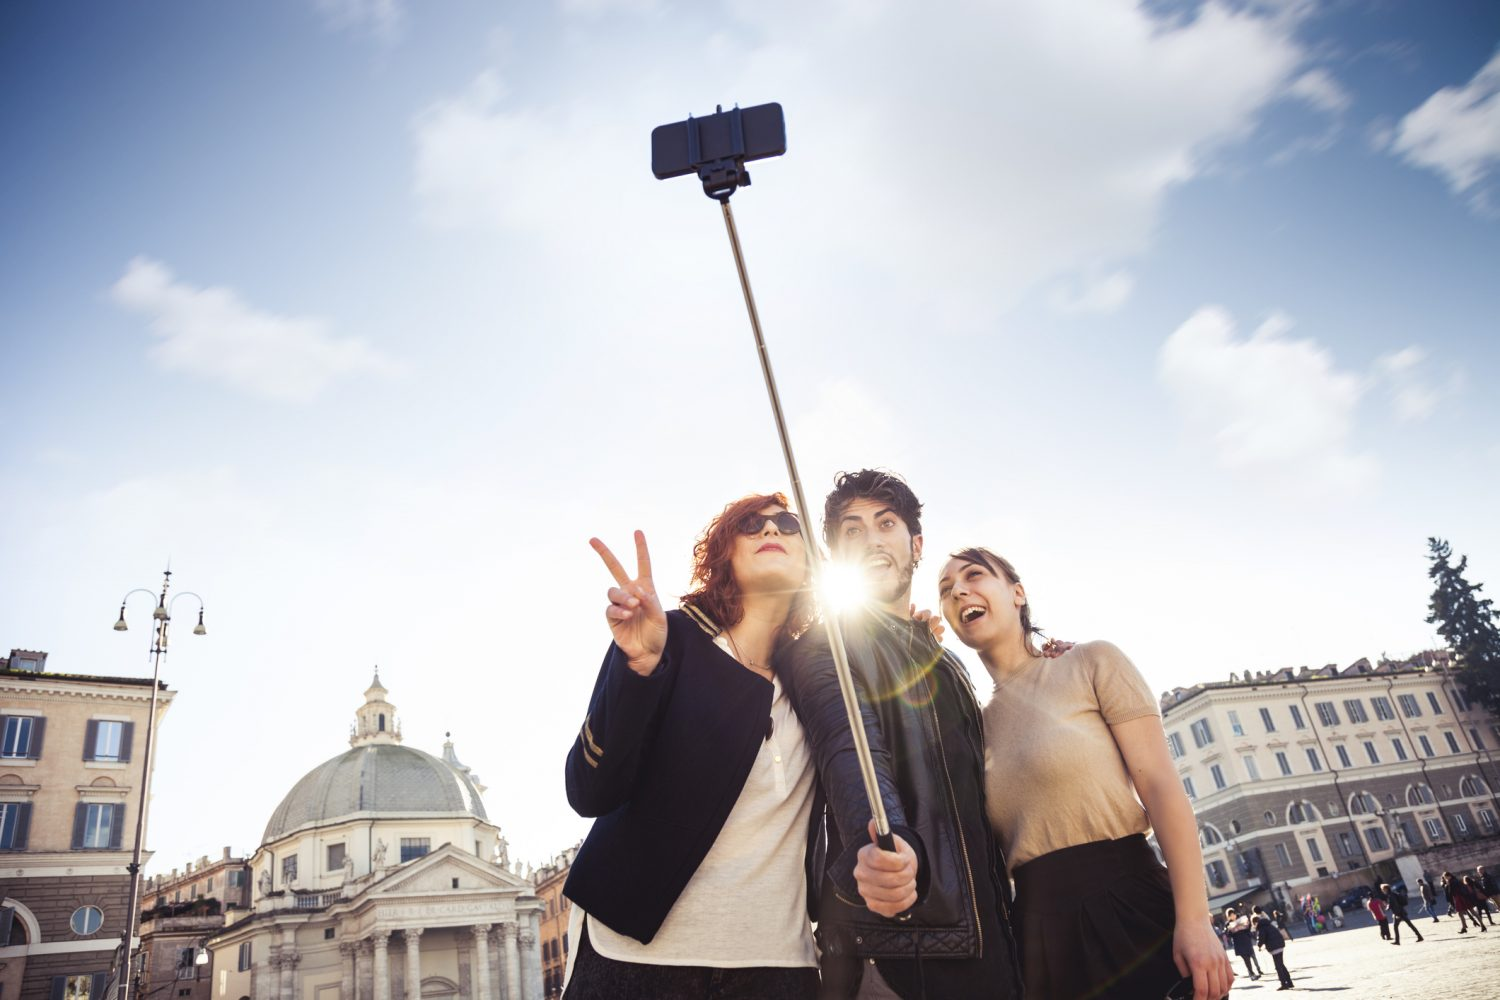 Group of happy friend spending some time together taking selfies using a selfie stick.